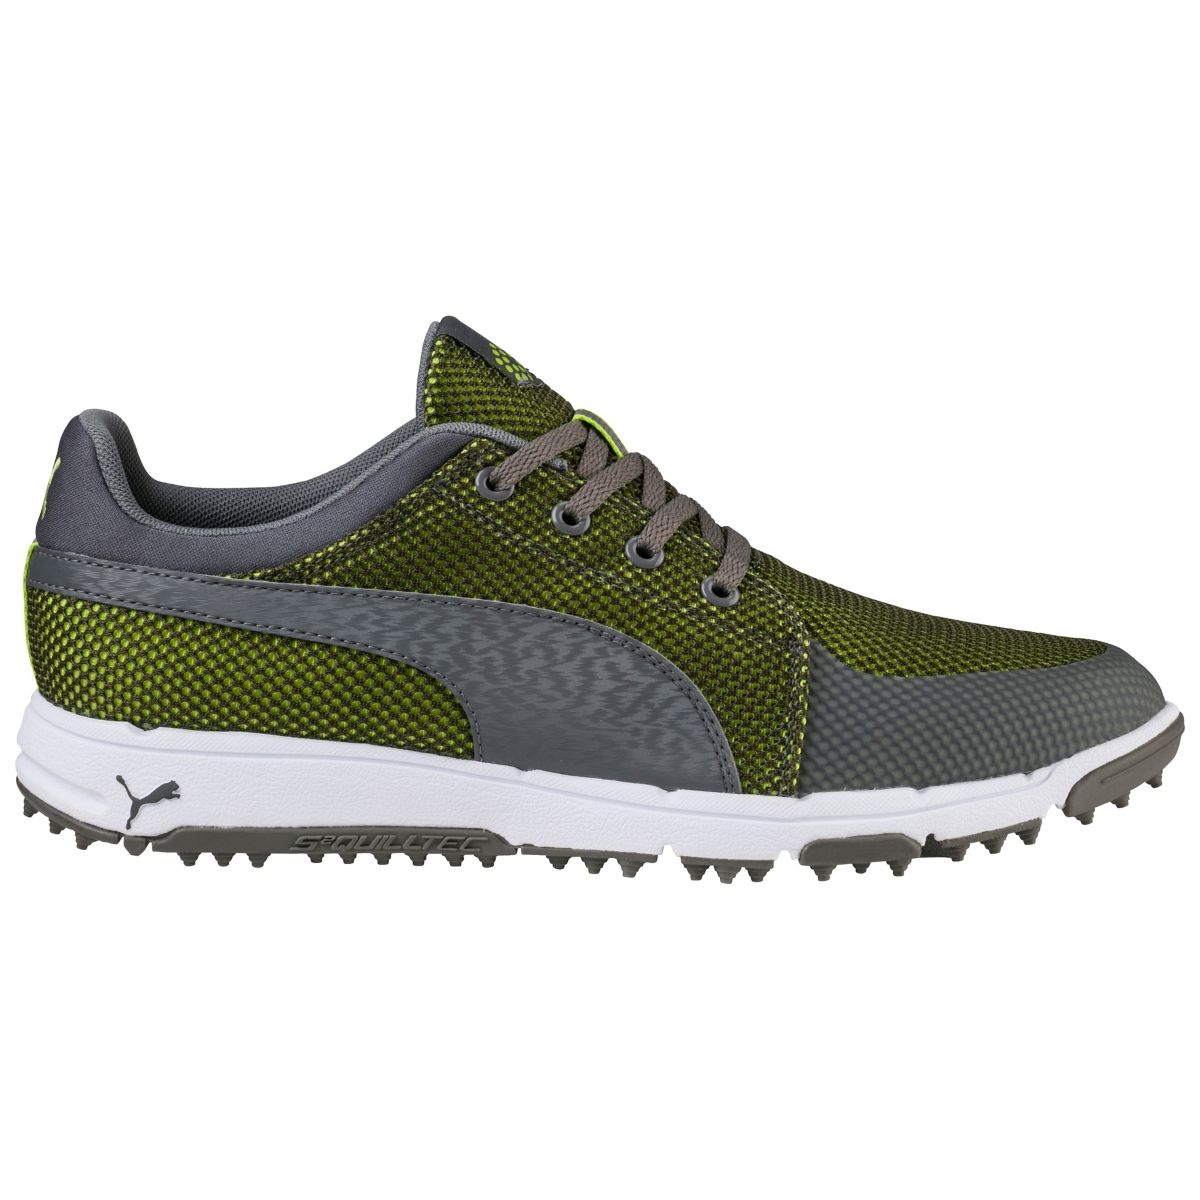 Puma Mens Grip Sport Tech Spikeless Golf Shoe - Shade/Lime